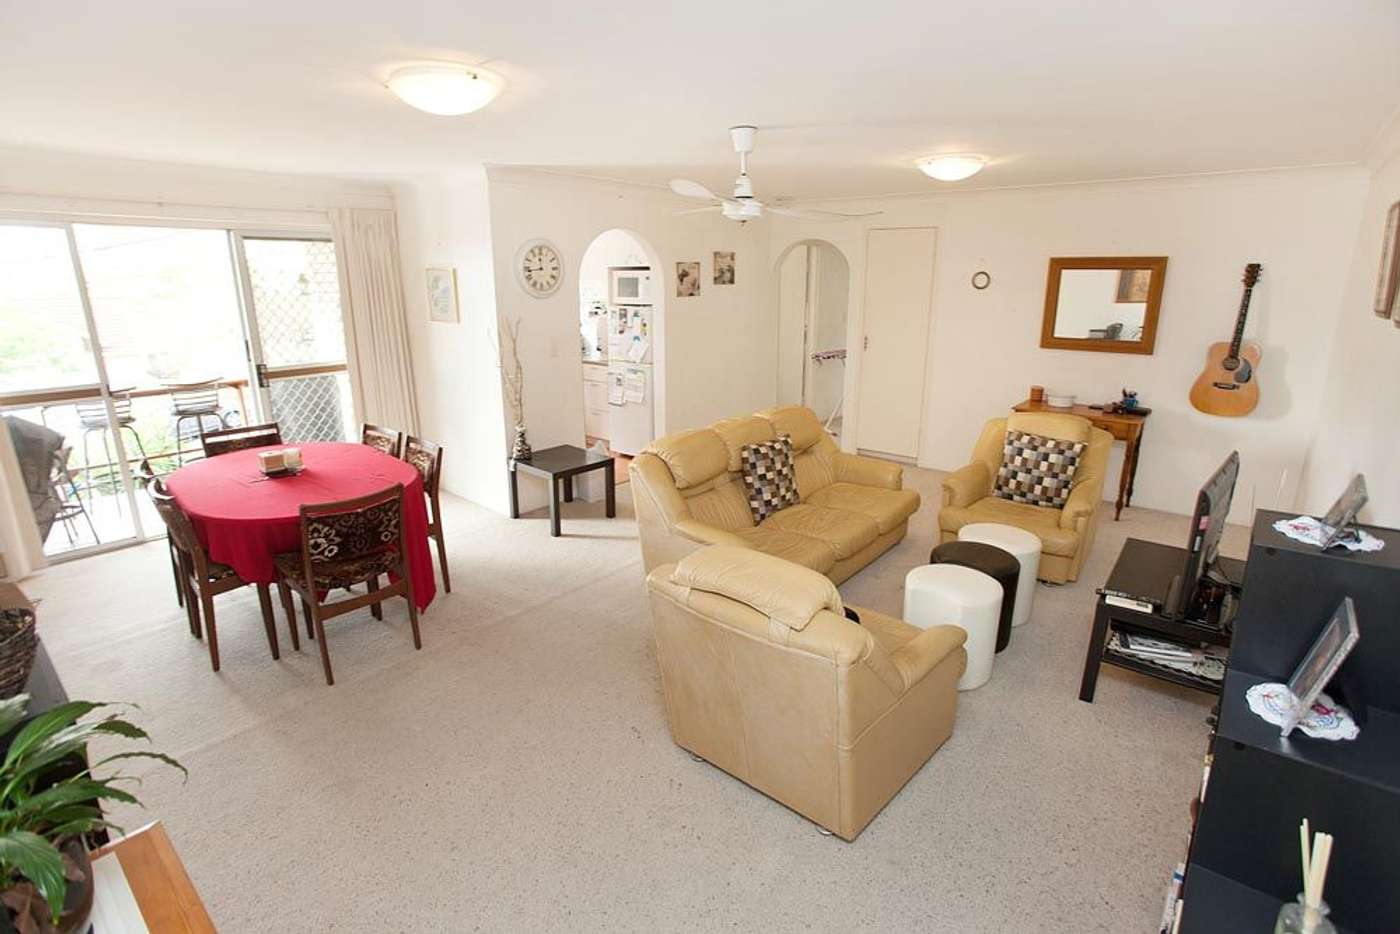 Main view of Homely apartment listing, 6/43-45 Dunmore Terrace, Auchenflower QLD 4066